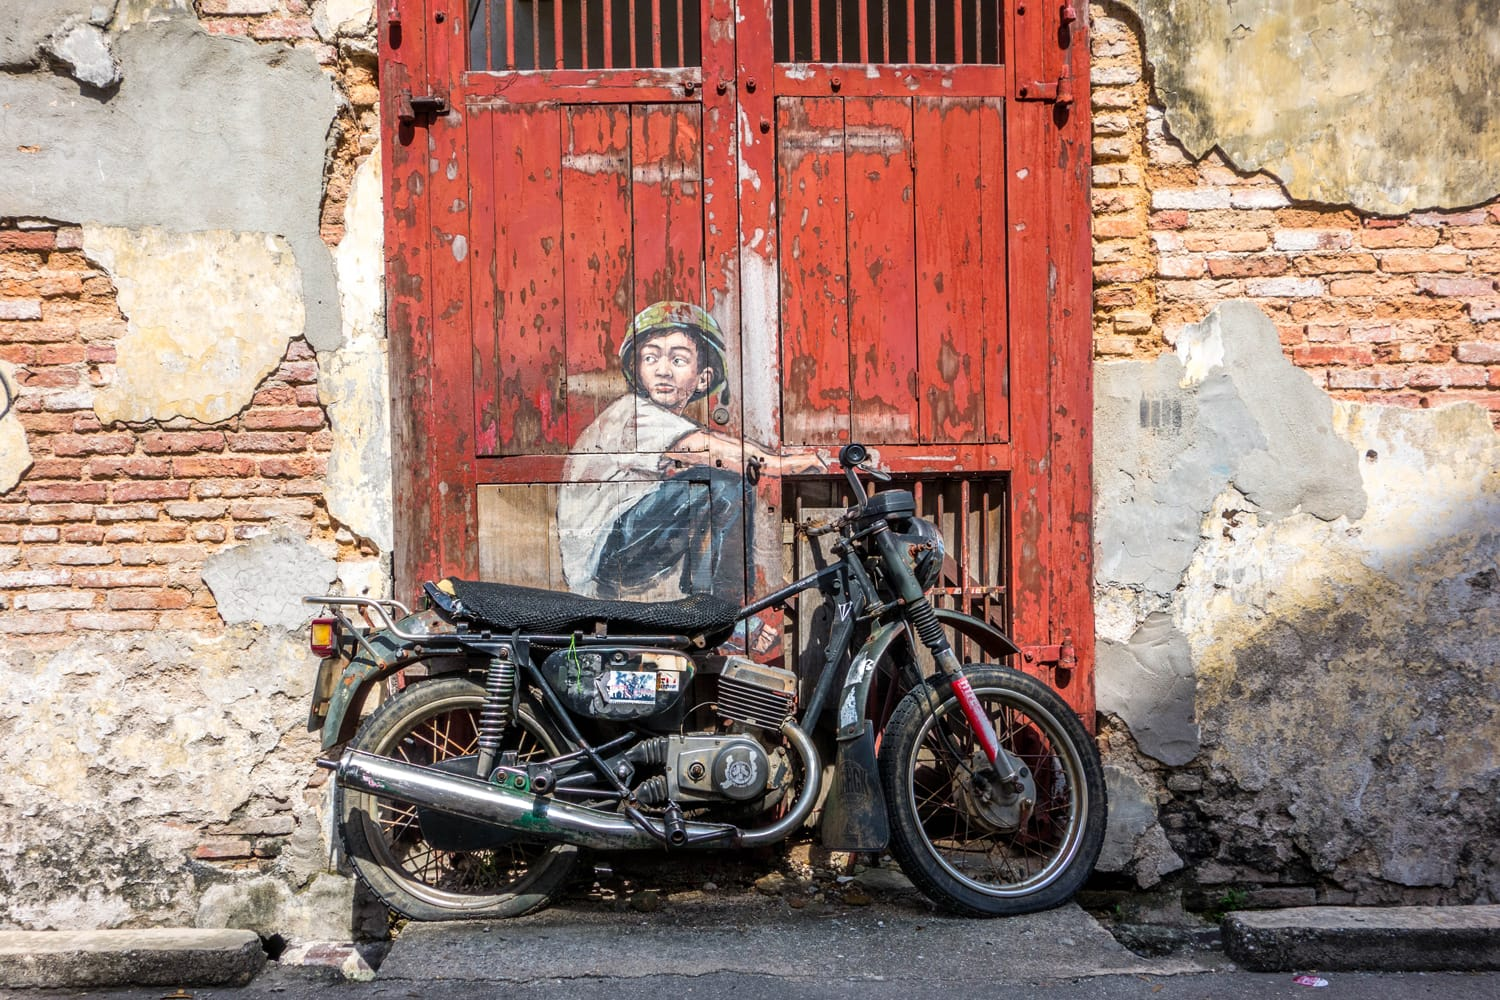 Motorcycle Street Art in Penang